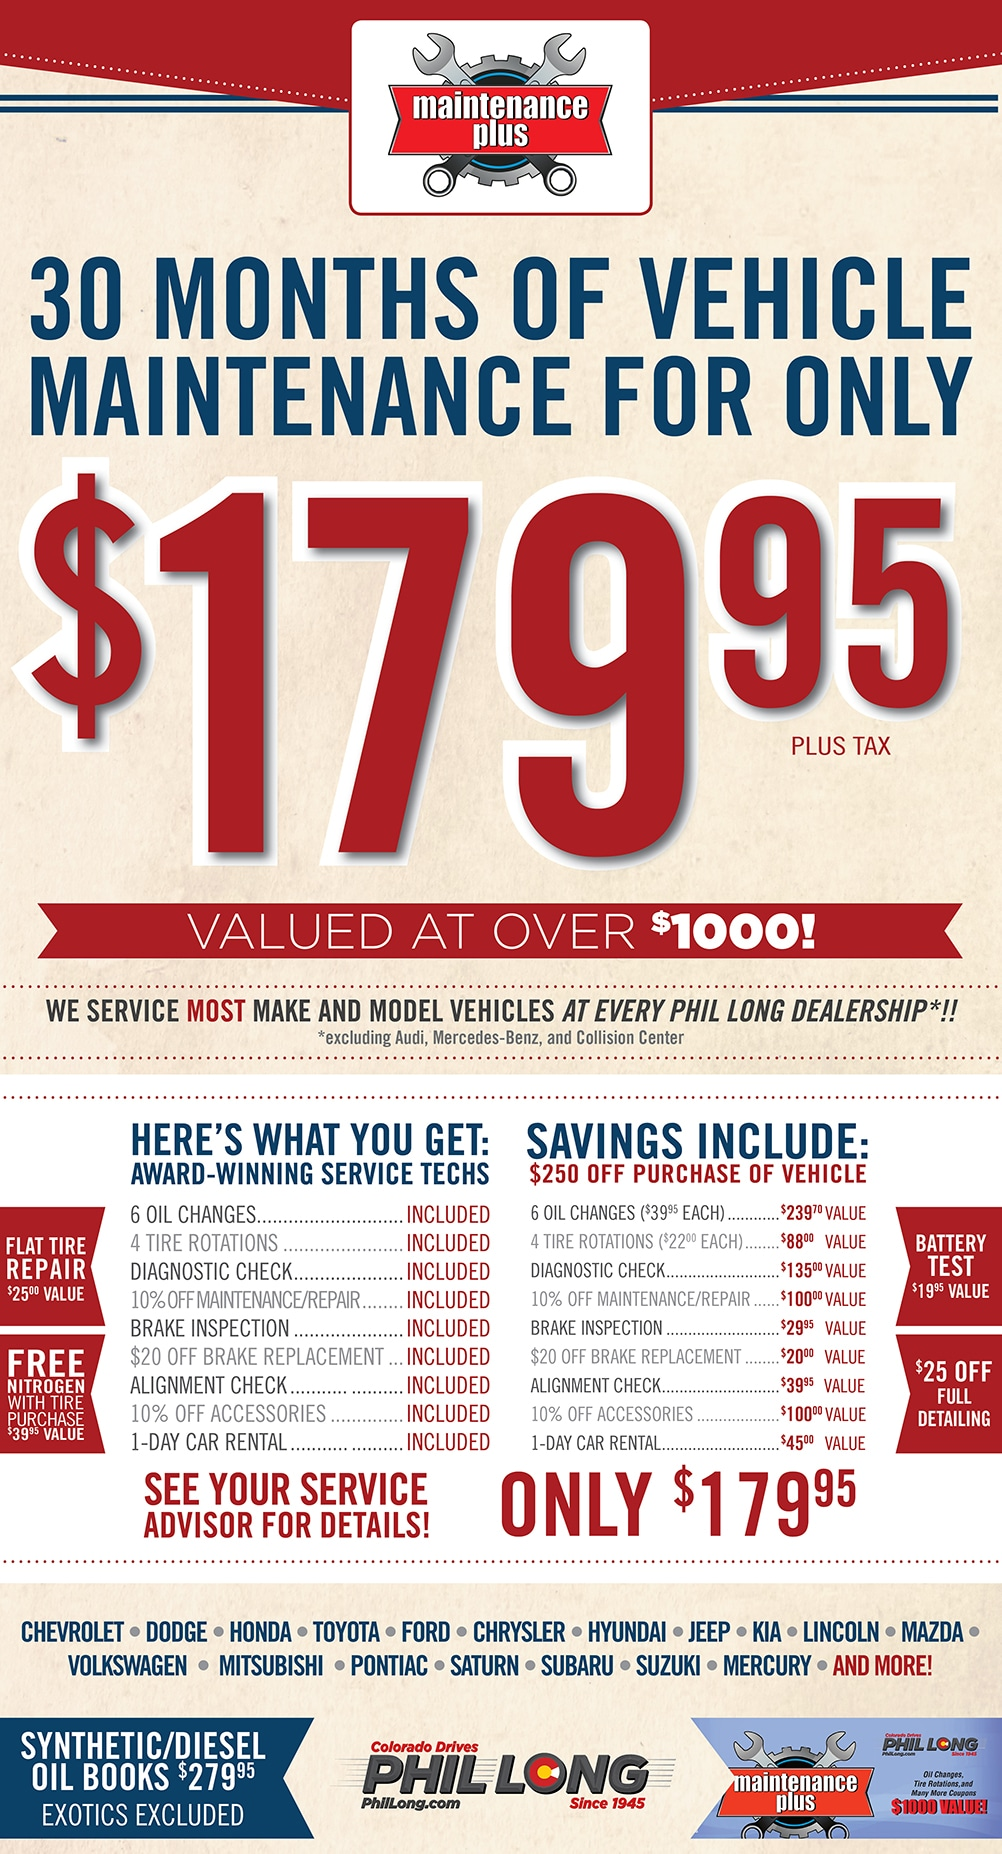 Image of Ford maintenance book specials and coupons in Colorado Springs